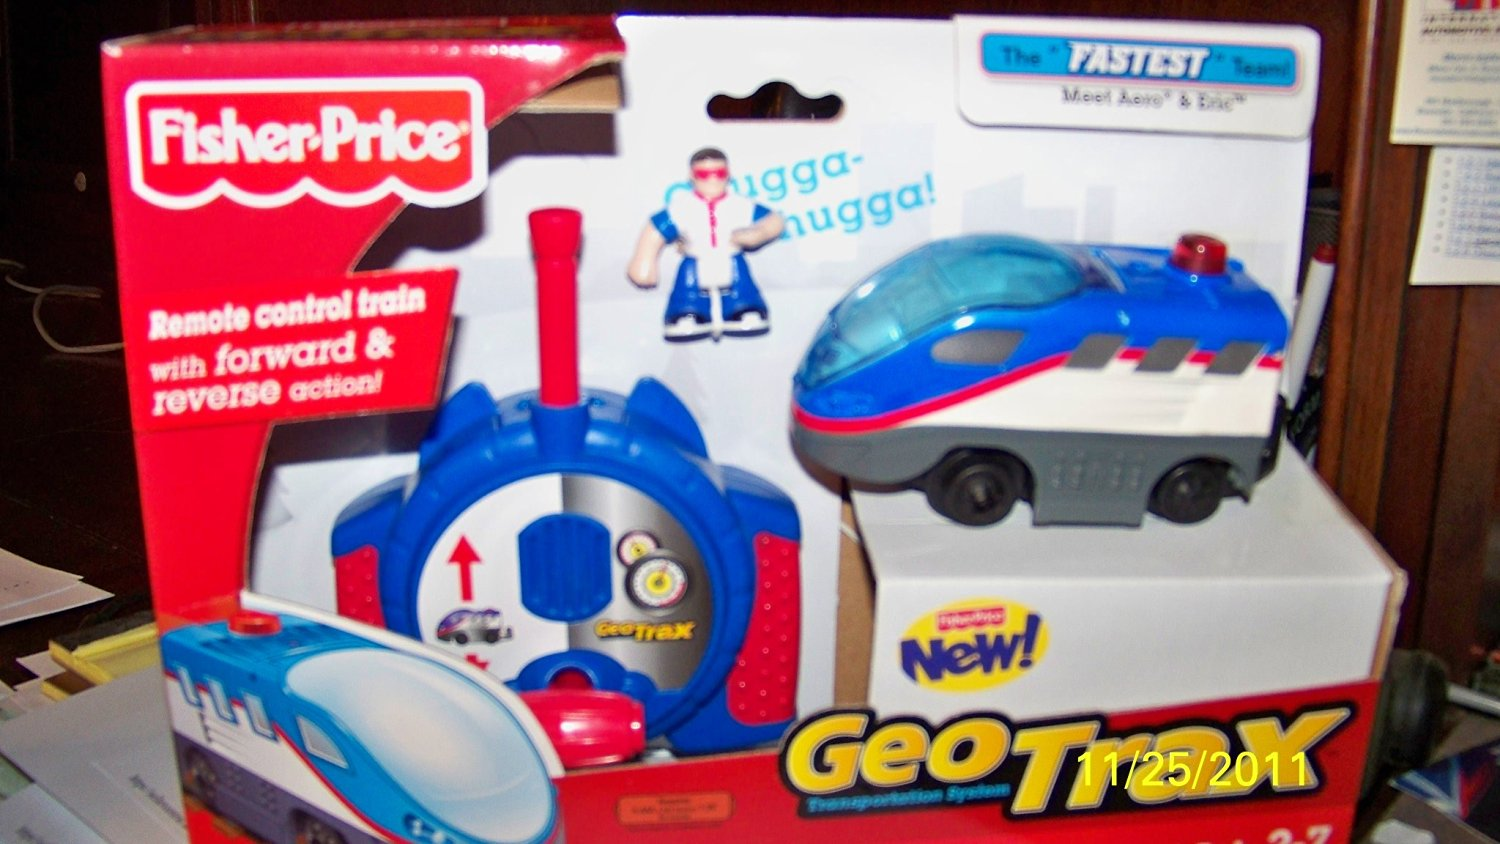 Geotrax the Fastest Team Meet Aero & Eric Remote Control Train Set New Style Geo Trax